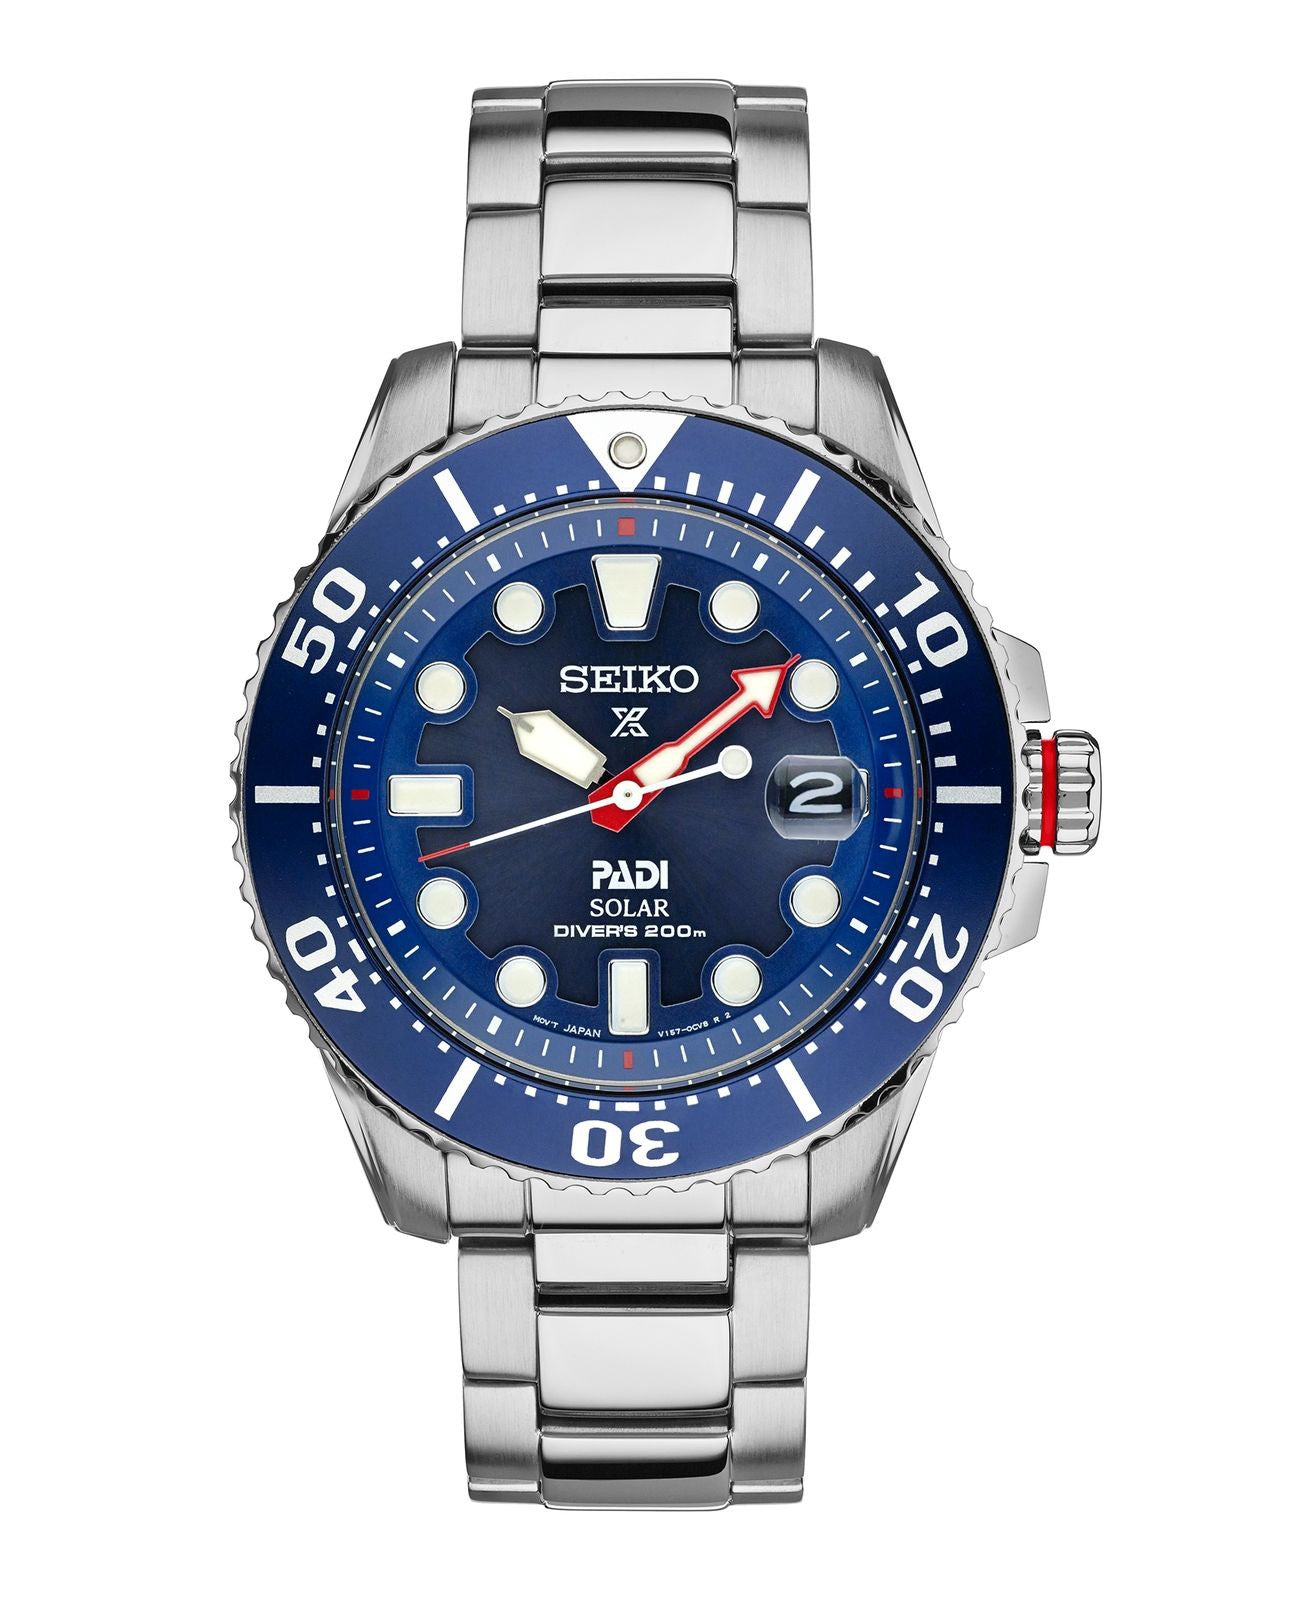 New Seiko PADI Dive Watch SNE435 Harnesses the Power of the SUN